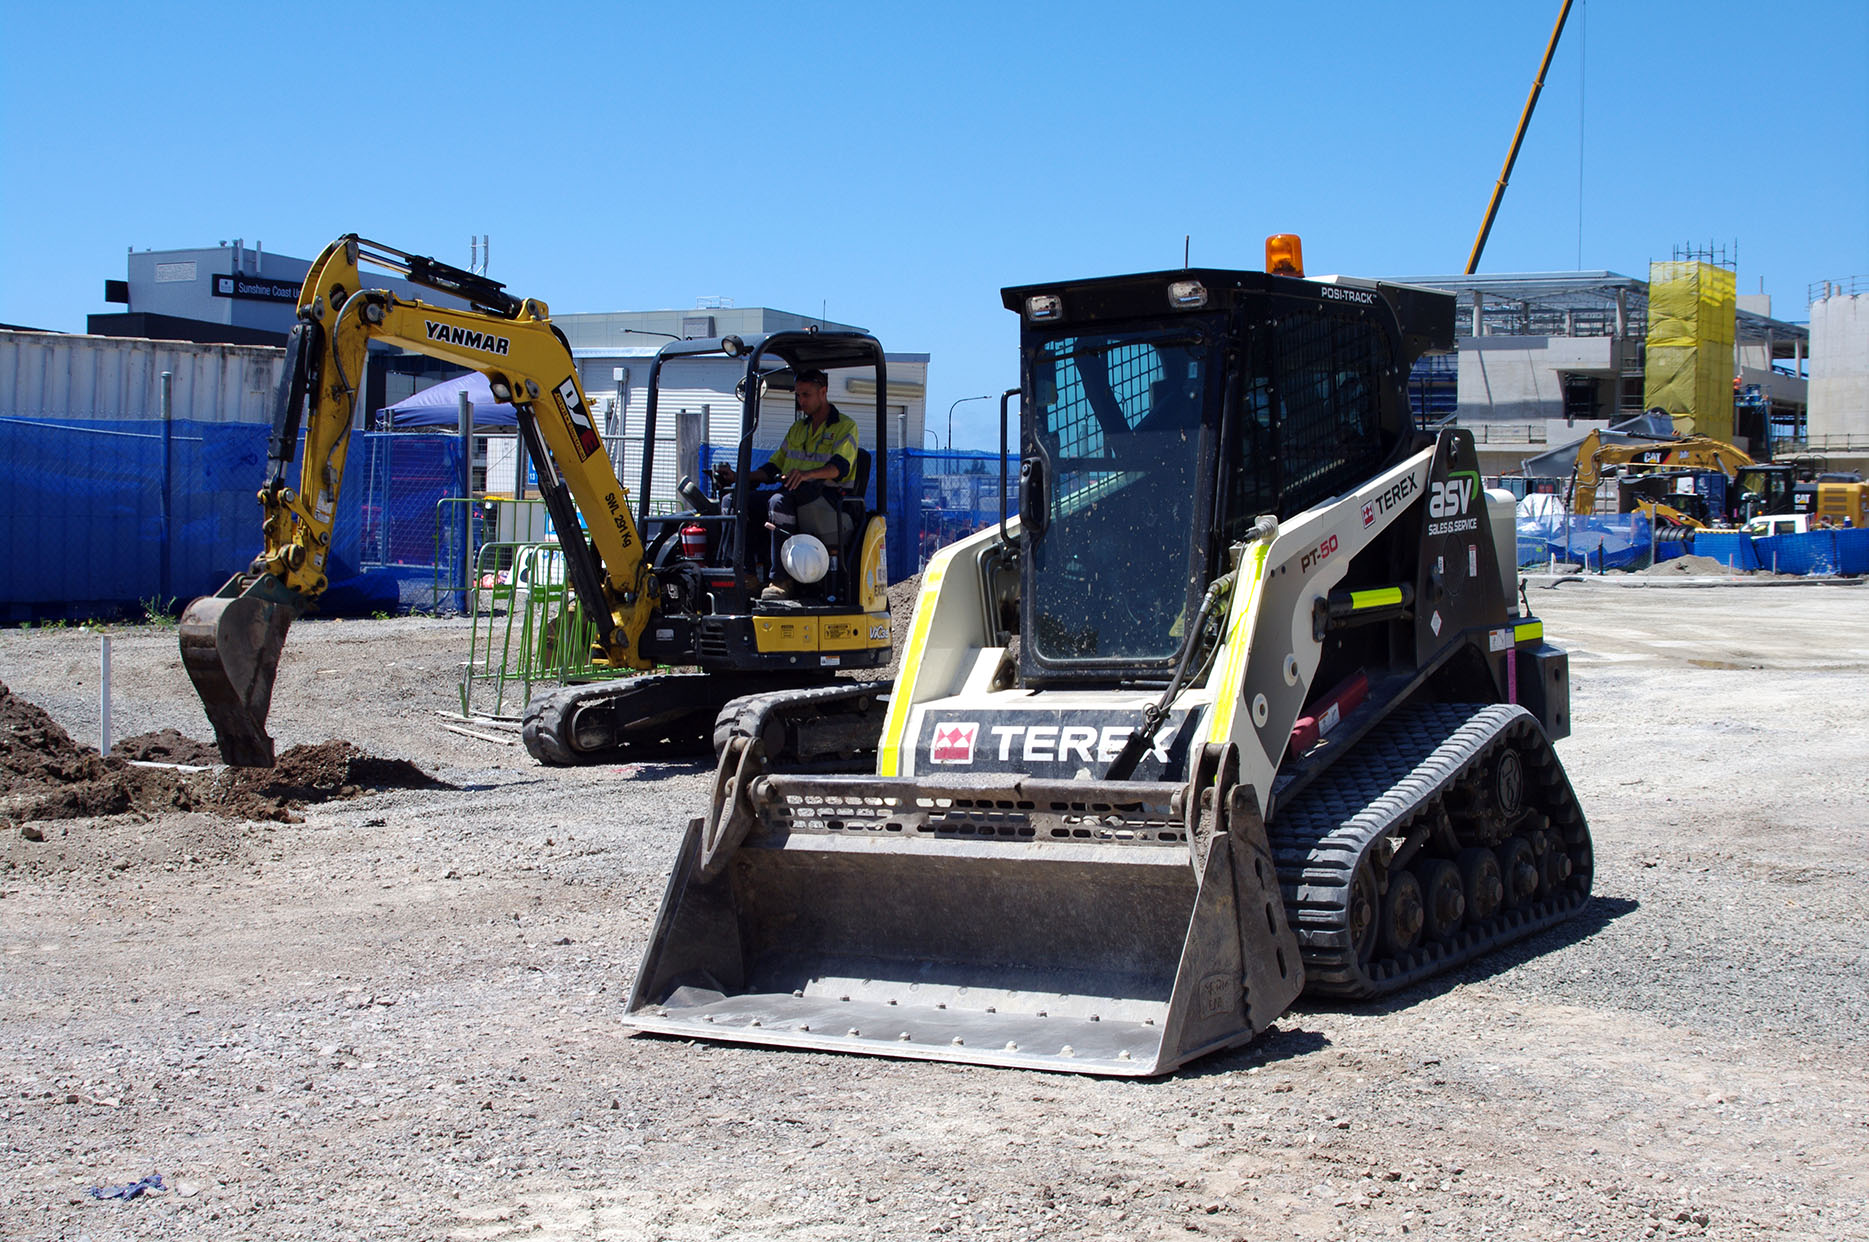 Civil works earthmoving sunshine coast - excavator dry hire